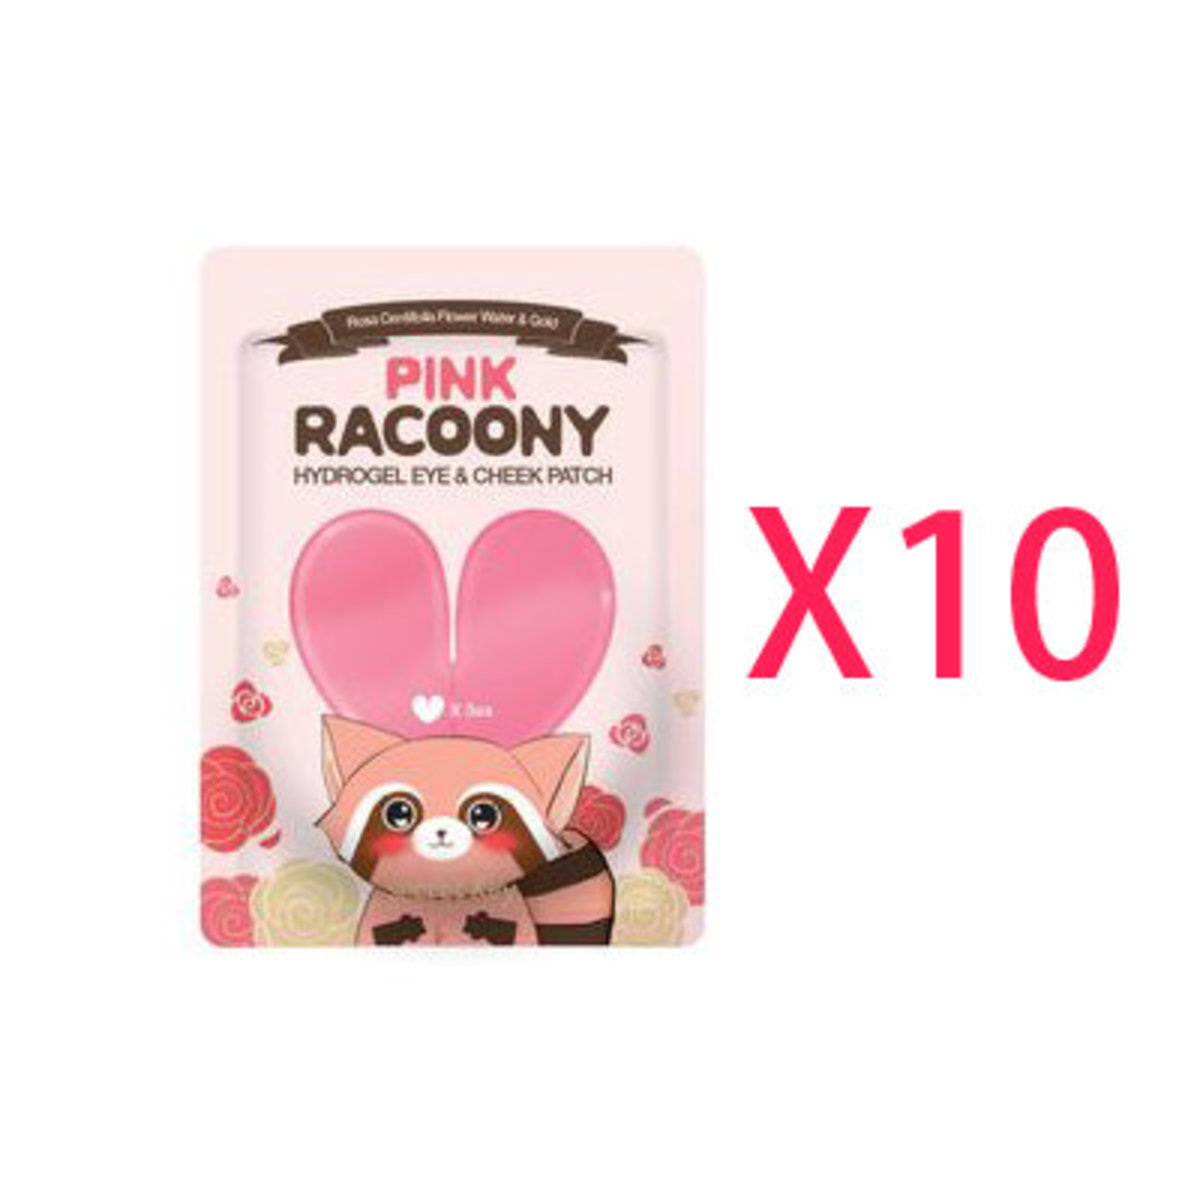 【Dealer Goods】Secret Key Pink Racoony Hydro-Gel eye and Check Patch x10